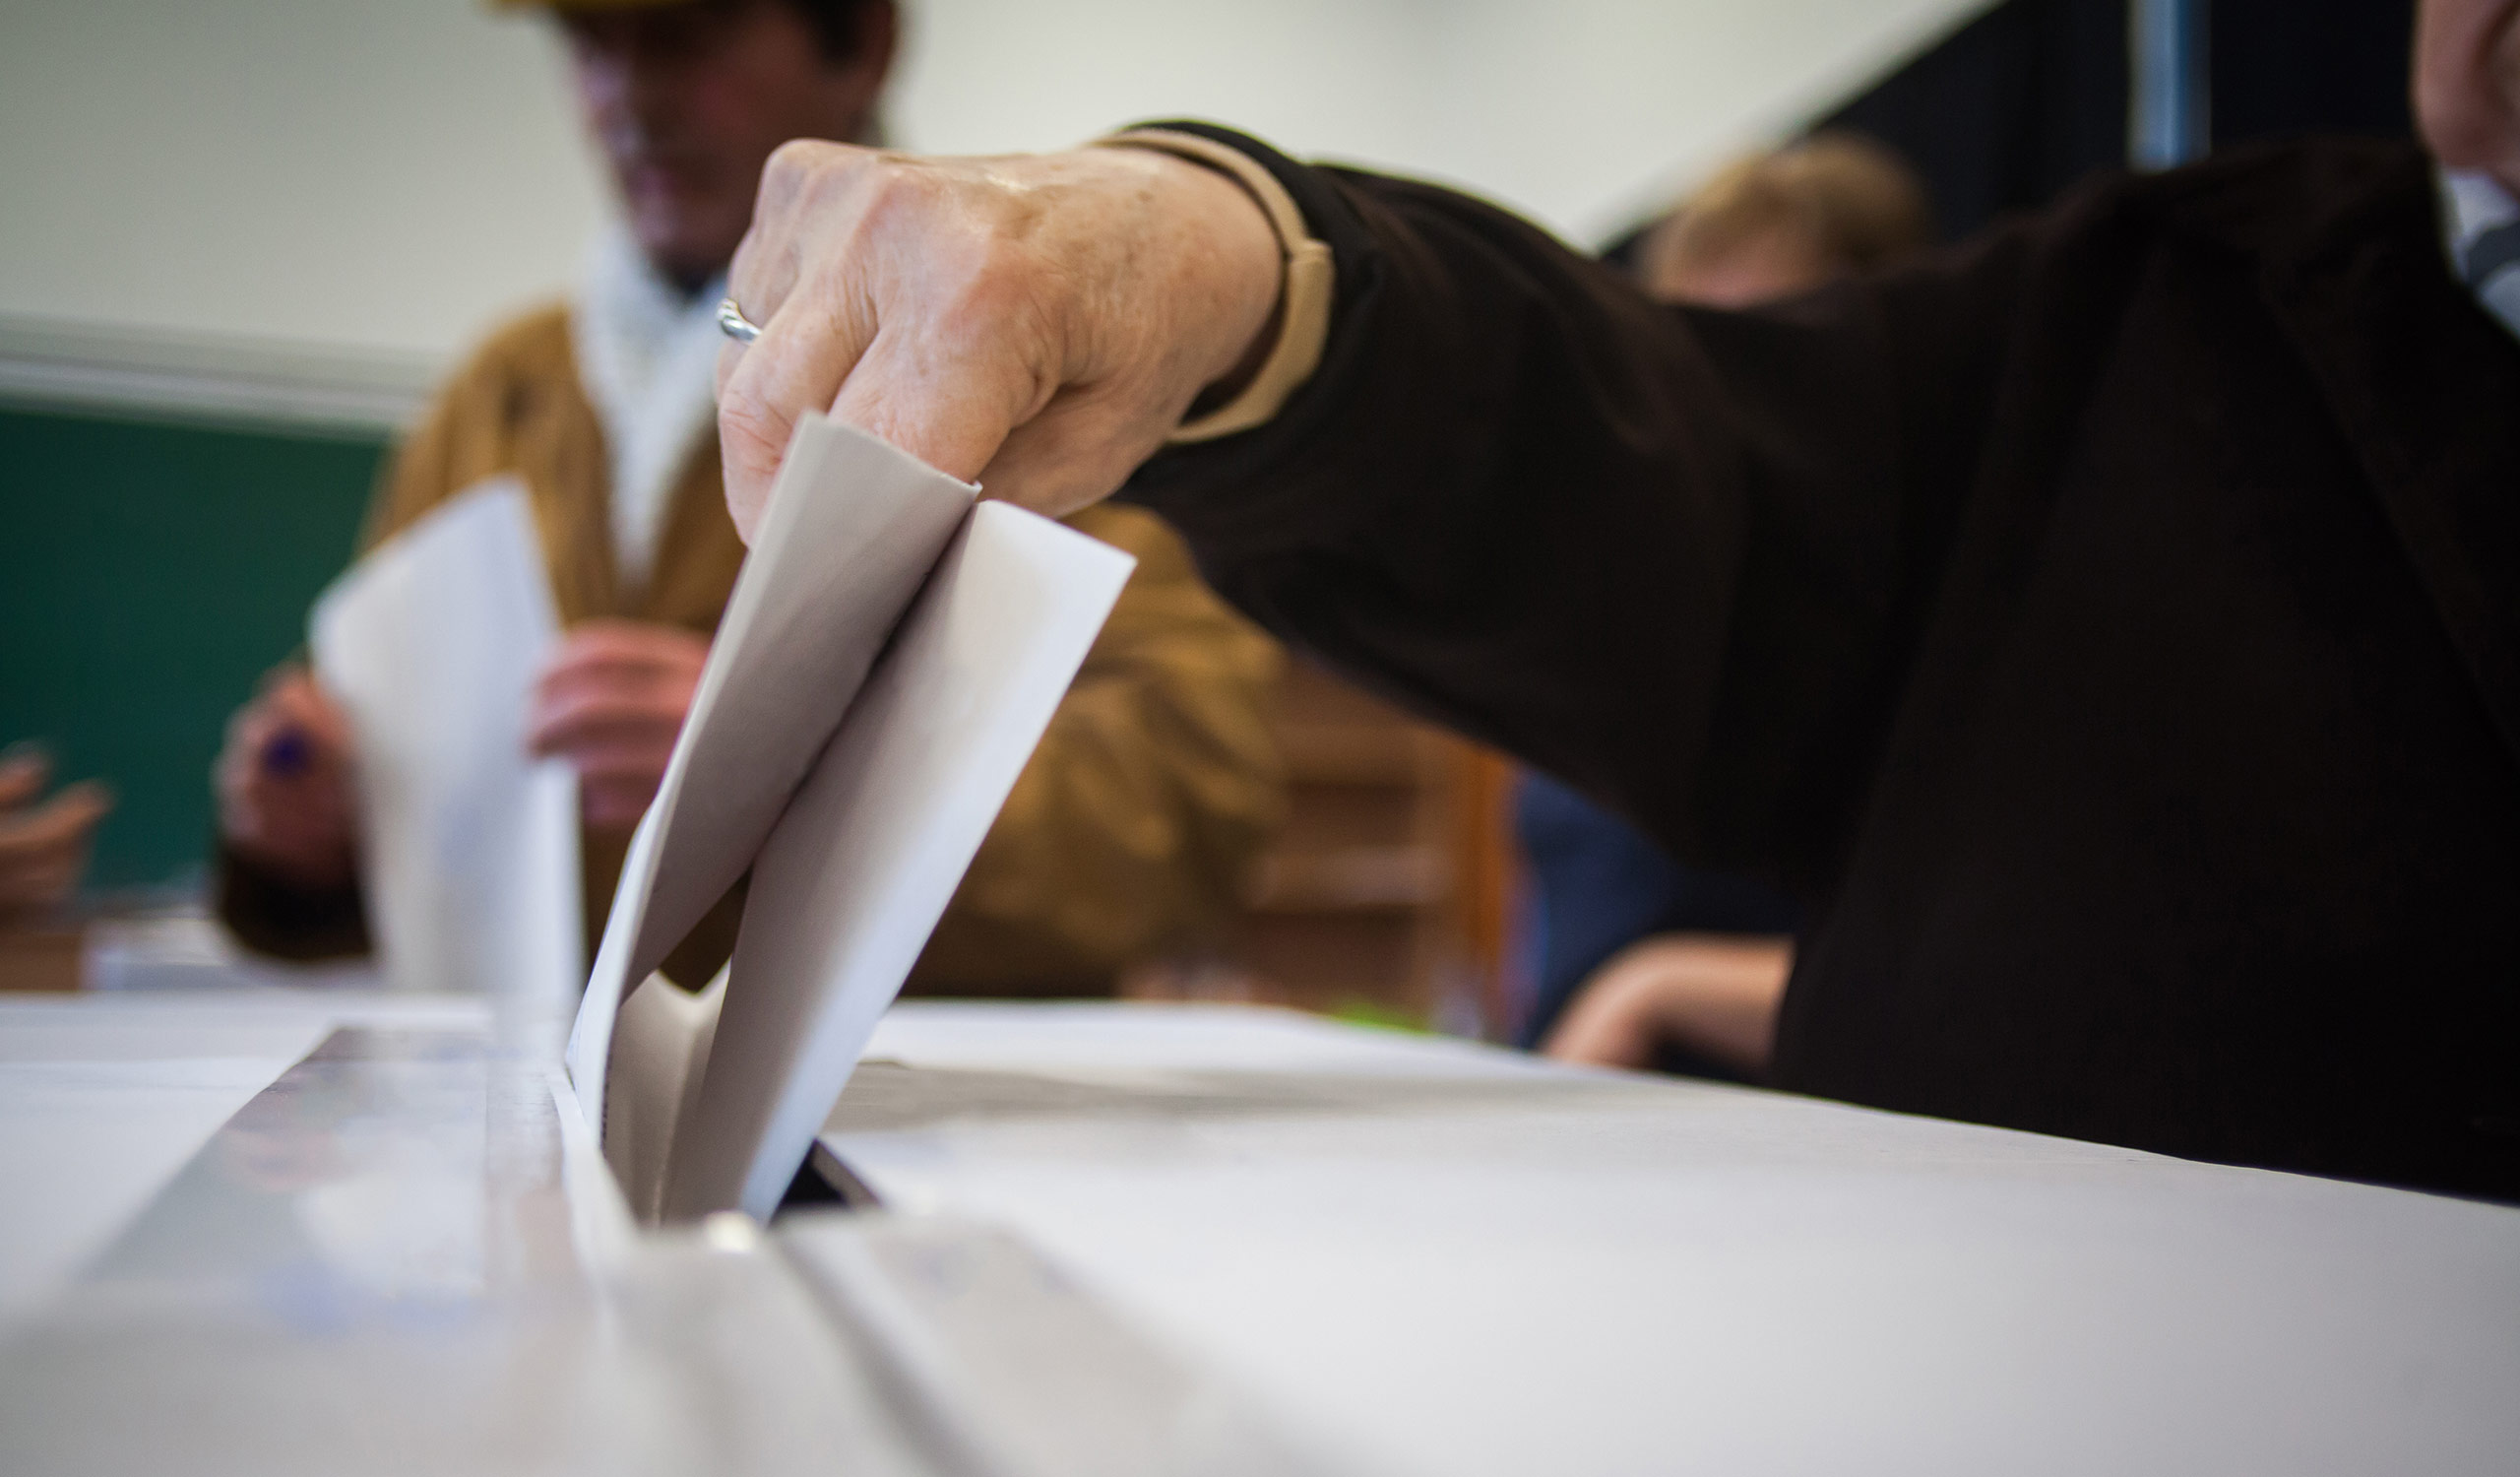 Man submitting his vote